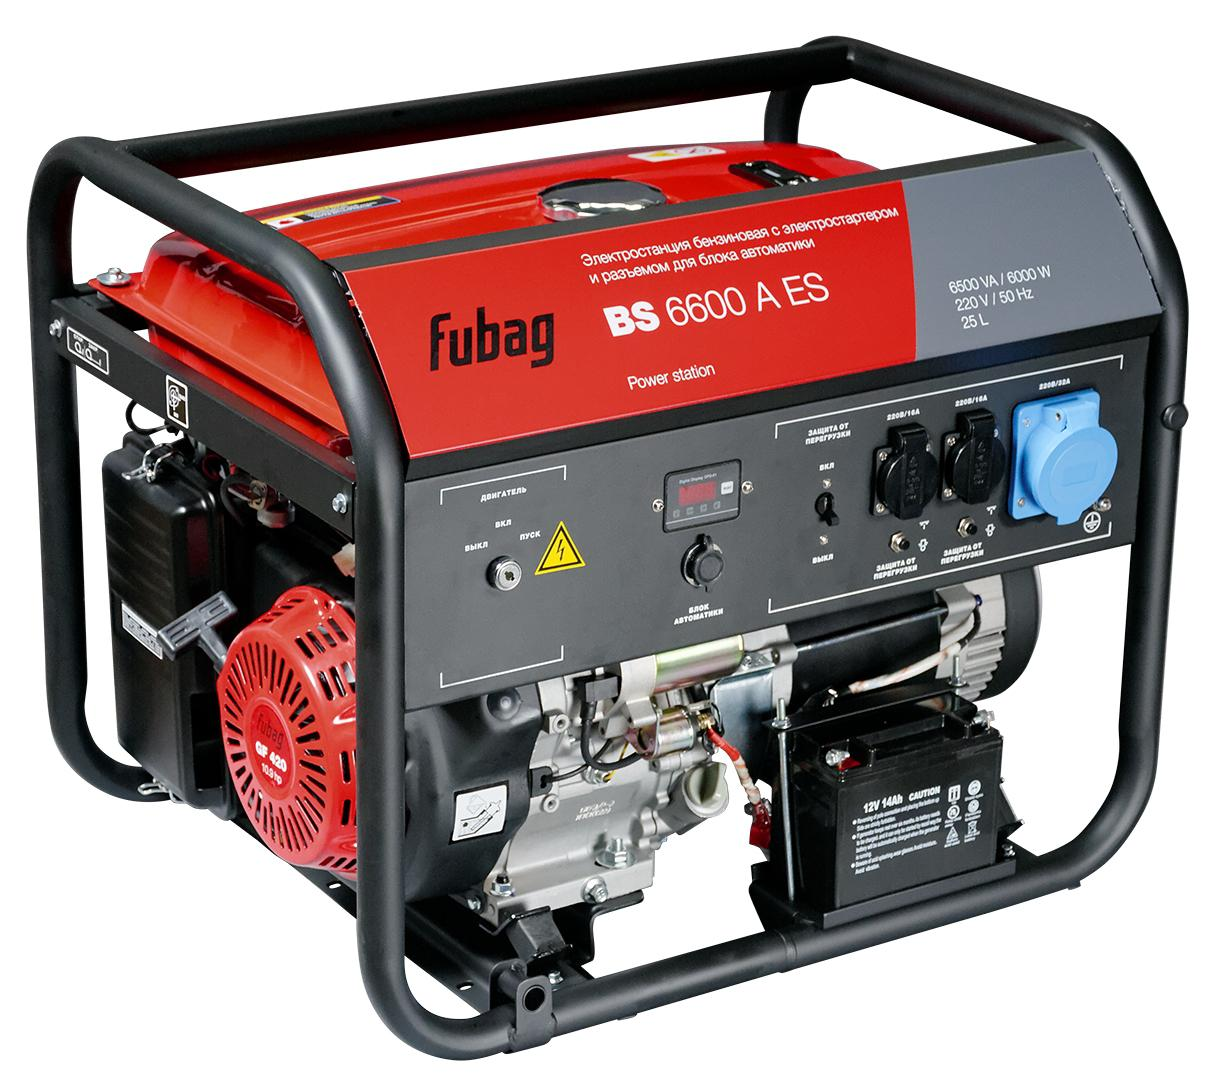 Бензиновый генератор Fubag Bs 6600 a es бензиновый генератор fubag bs 3500 duplex